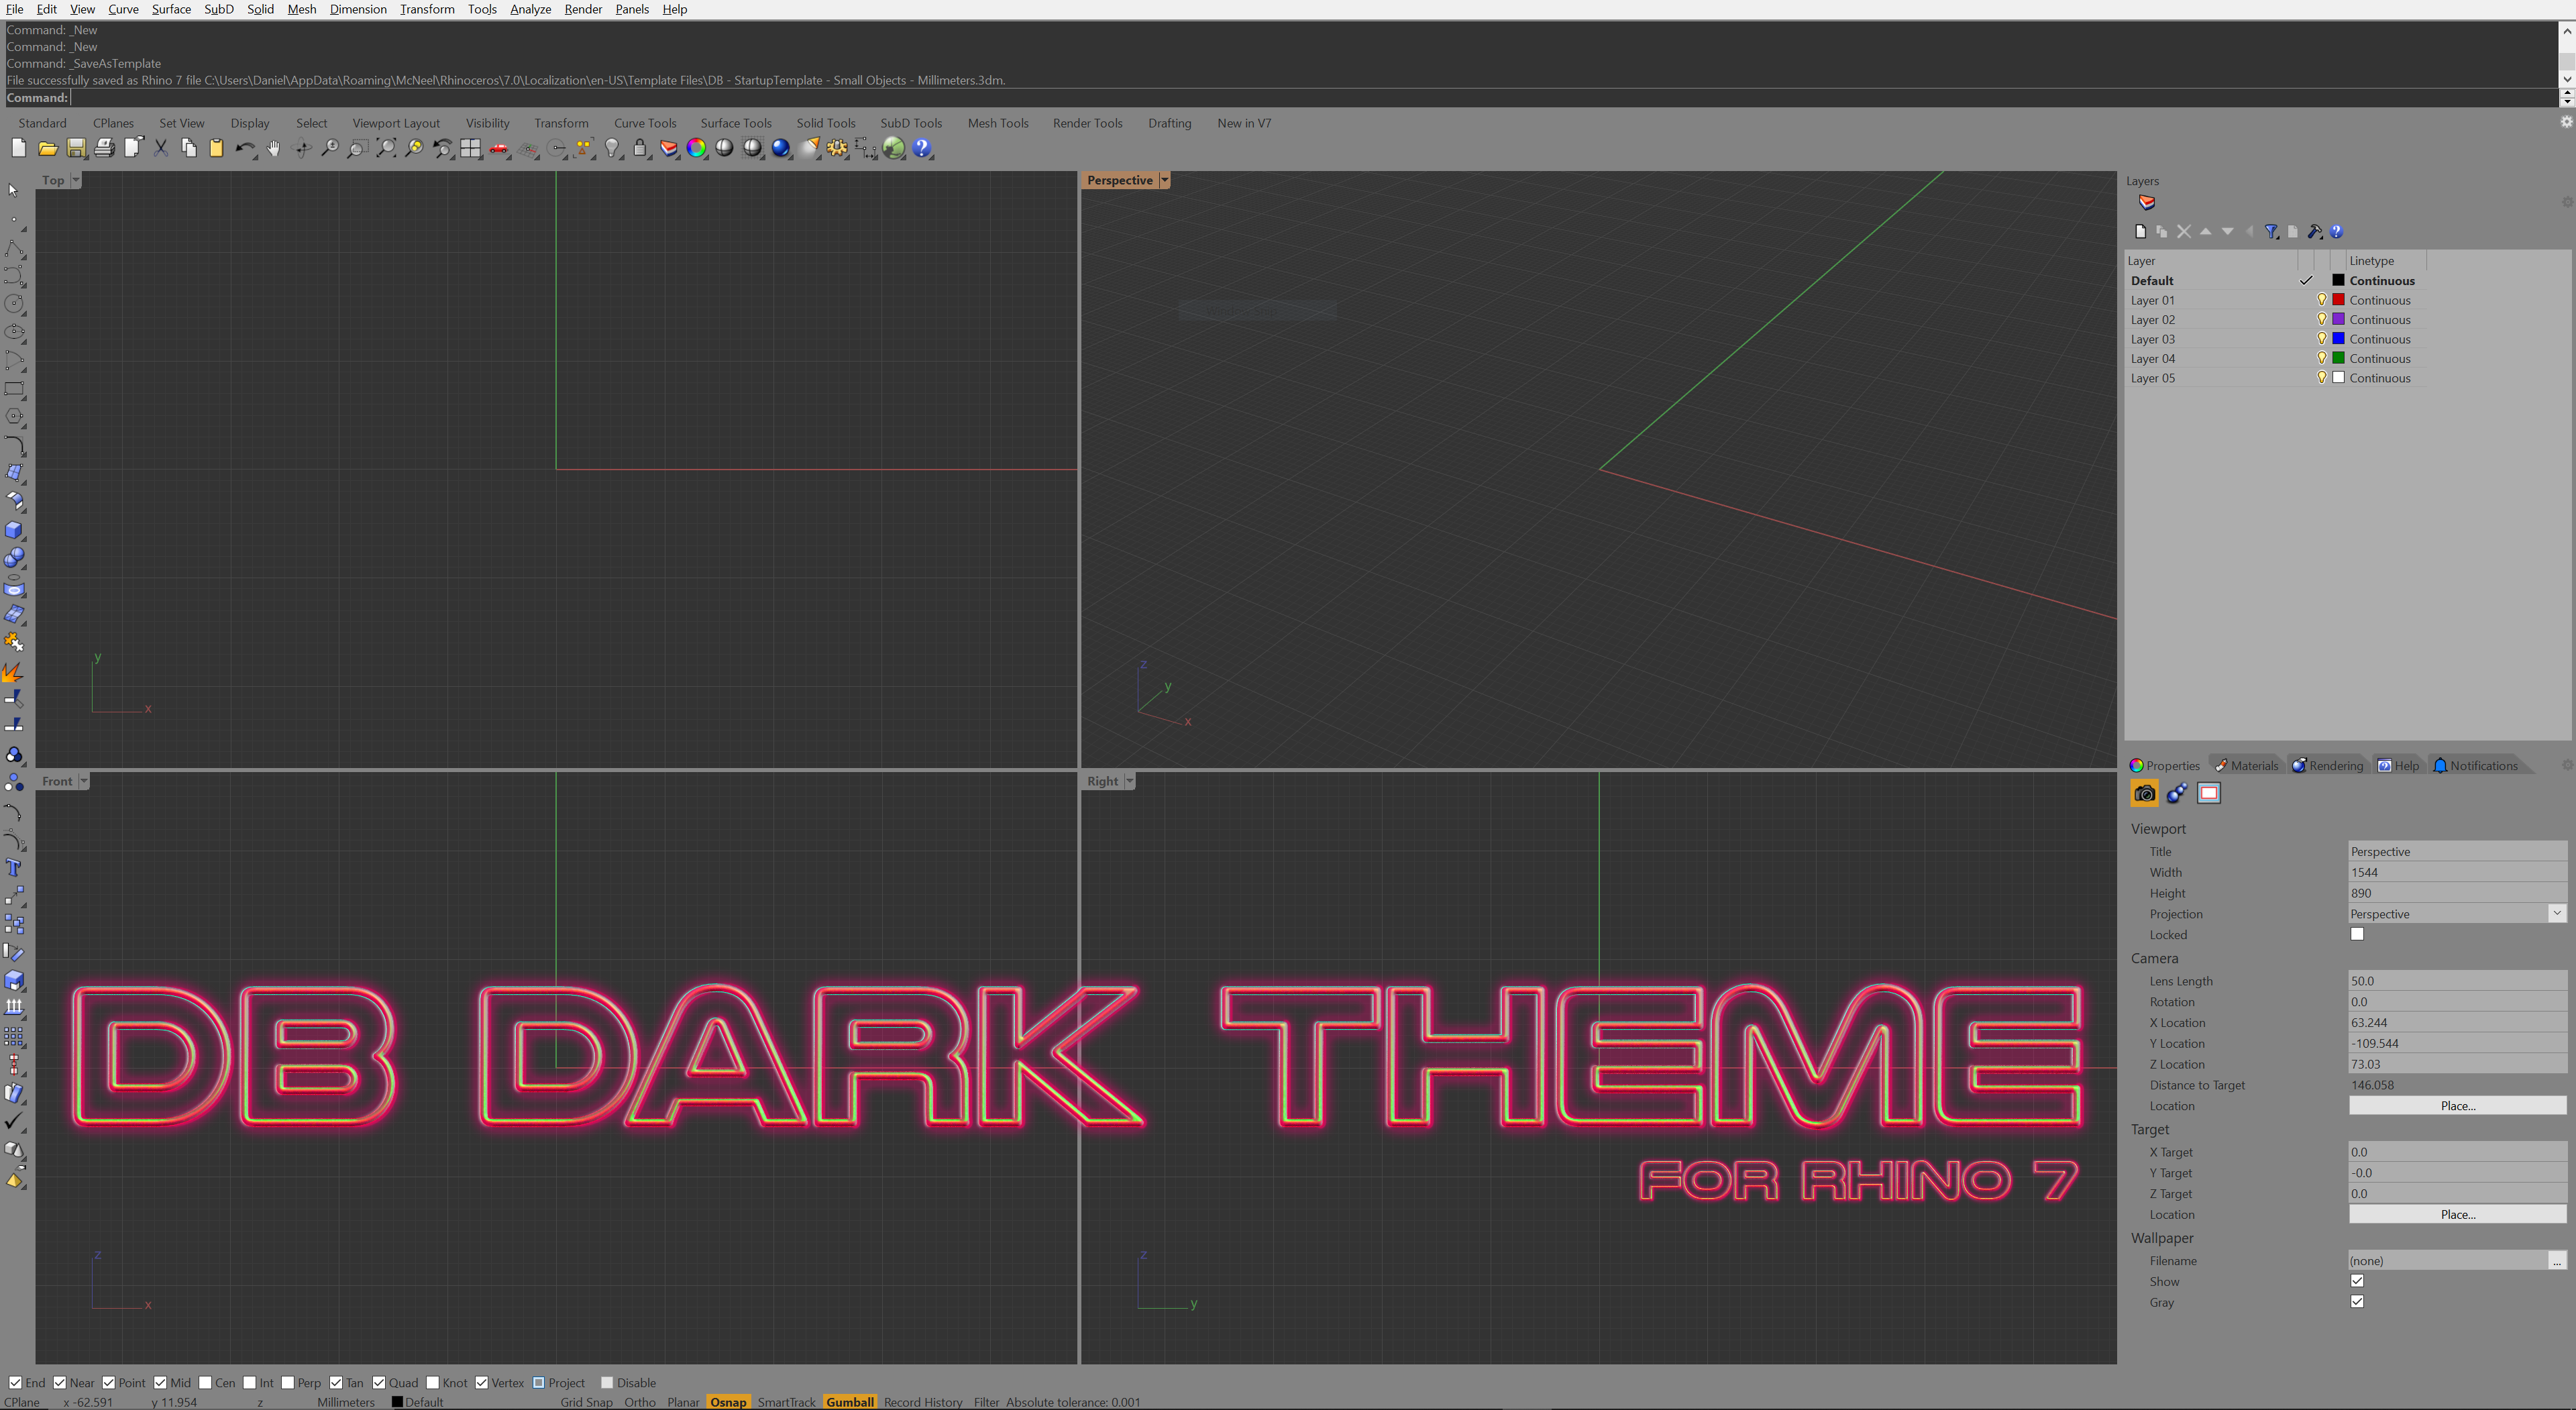 DB Dark Theme For Rhino 7